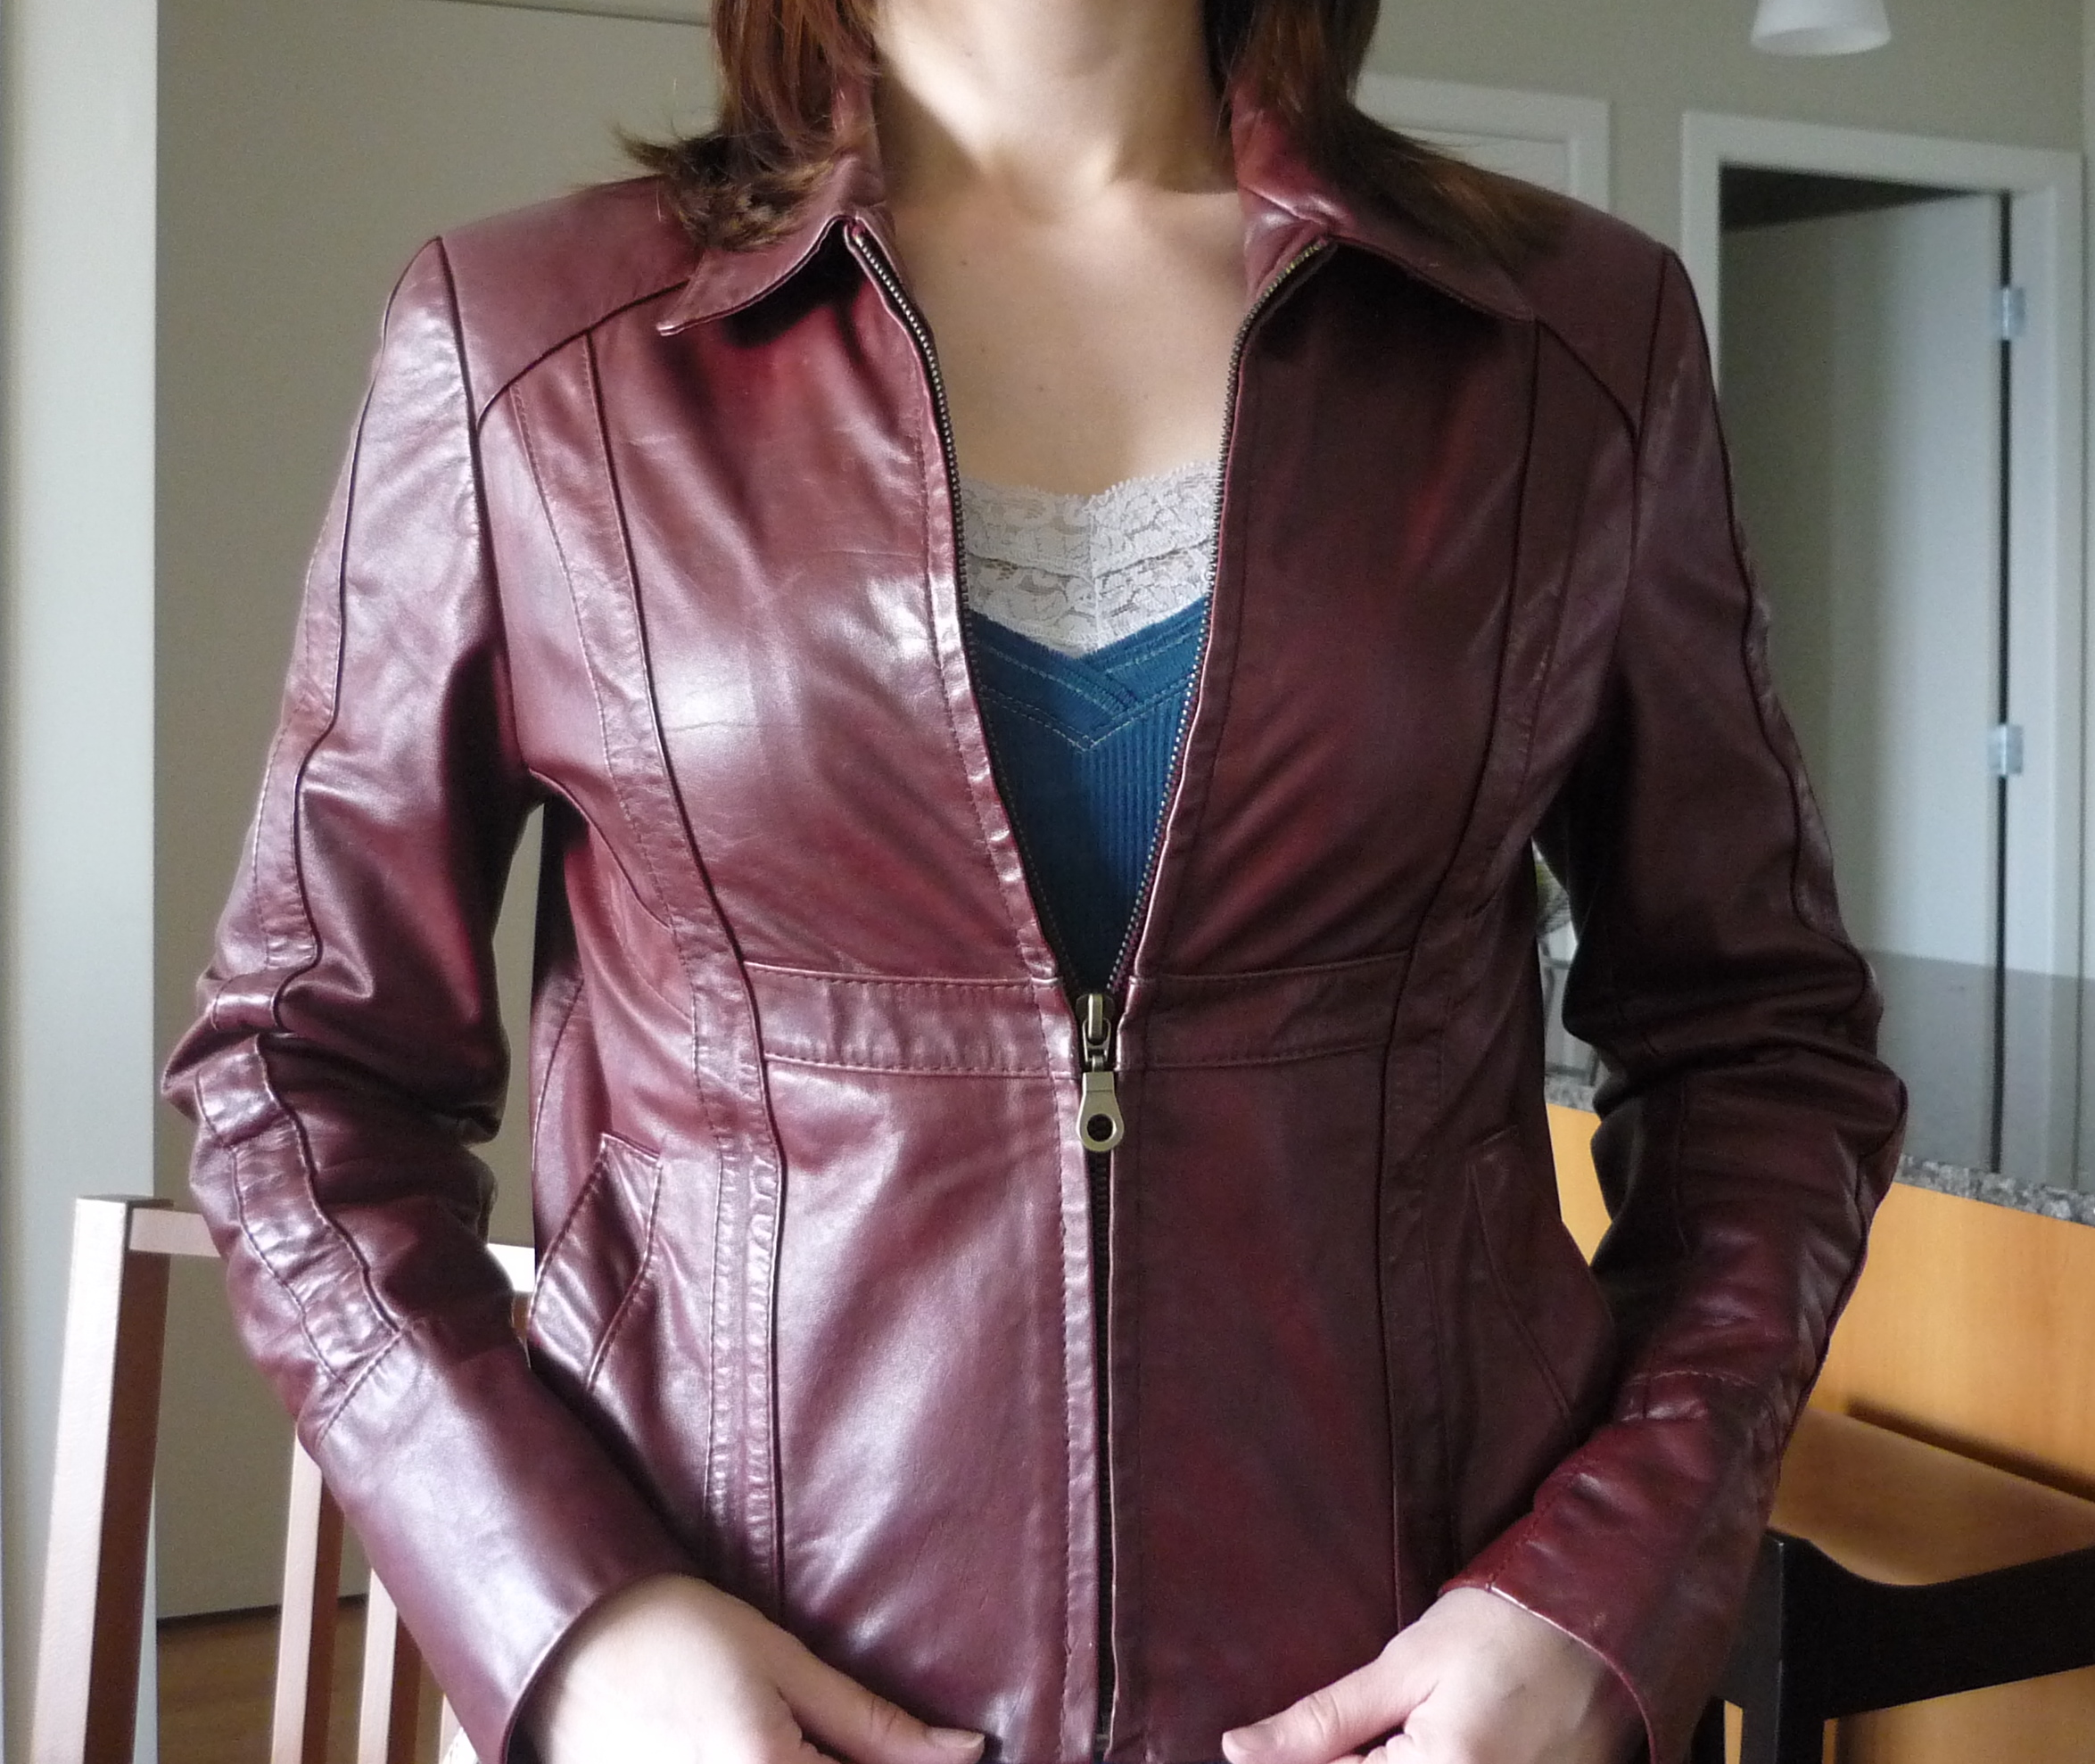 Leather jacket zip repair - Dust Off The Baby Powder From Your Jacket And Zip Up The Jacket You Re Done